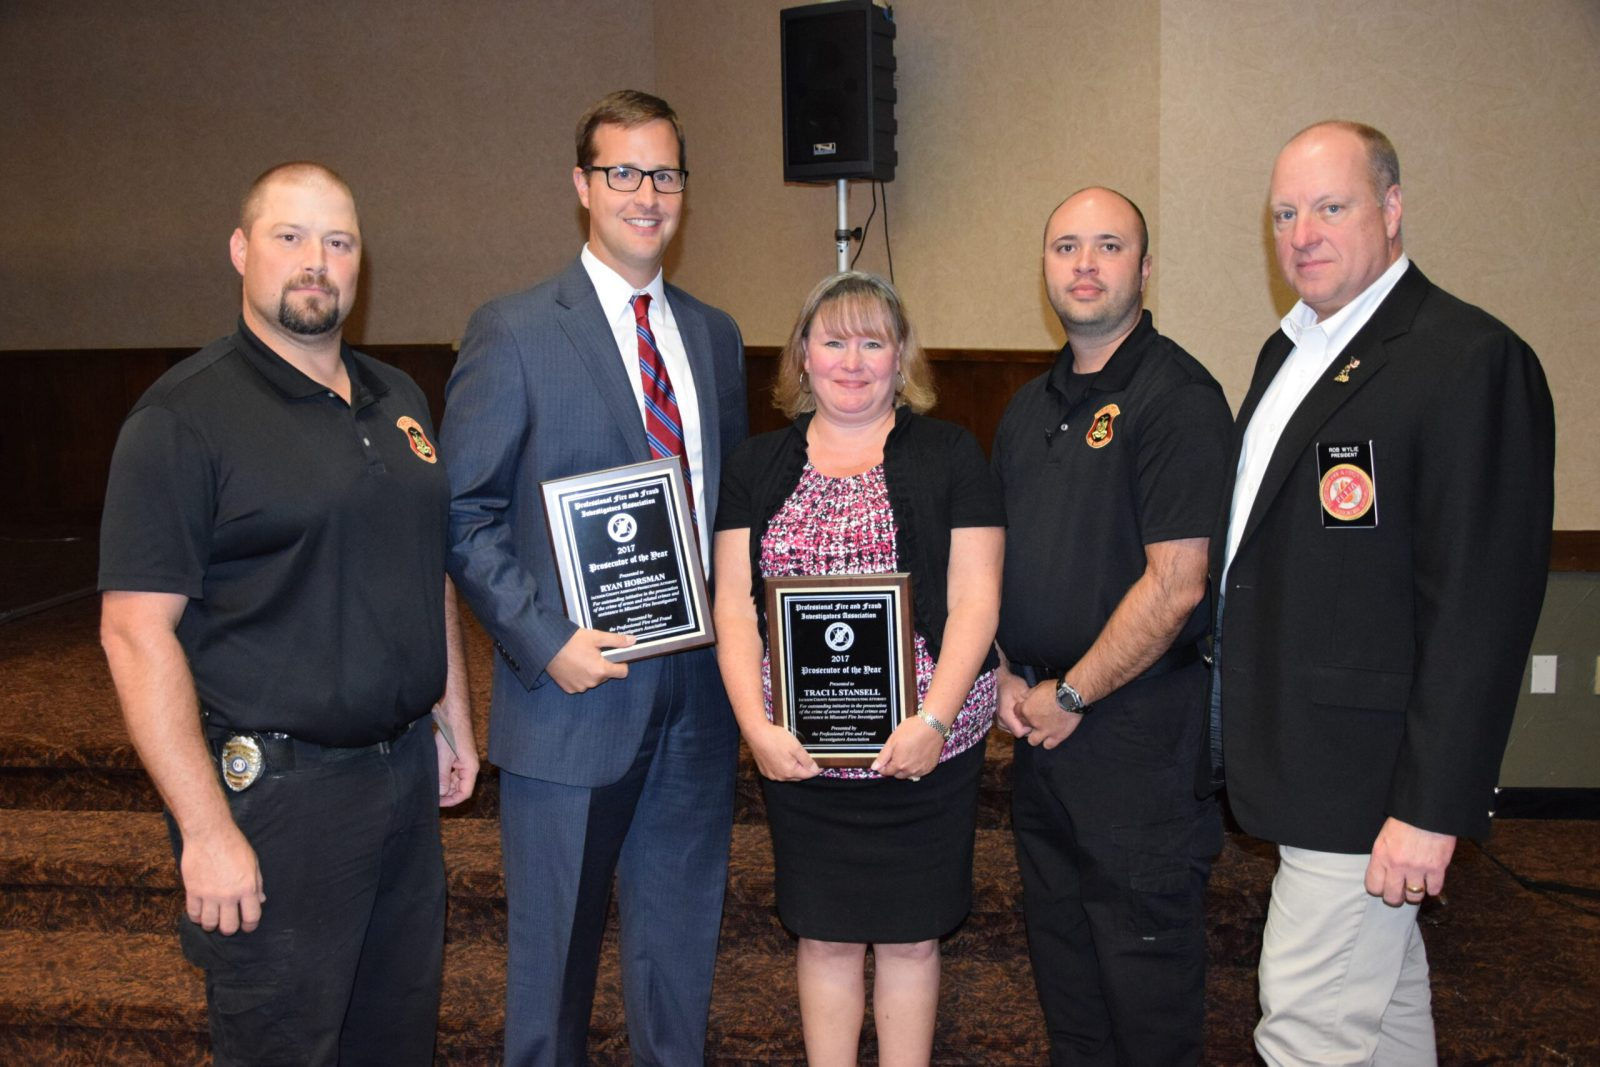 2017 Prosecuting Attorneys of the Year